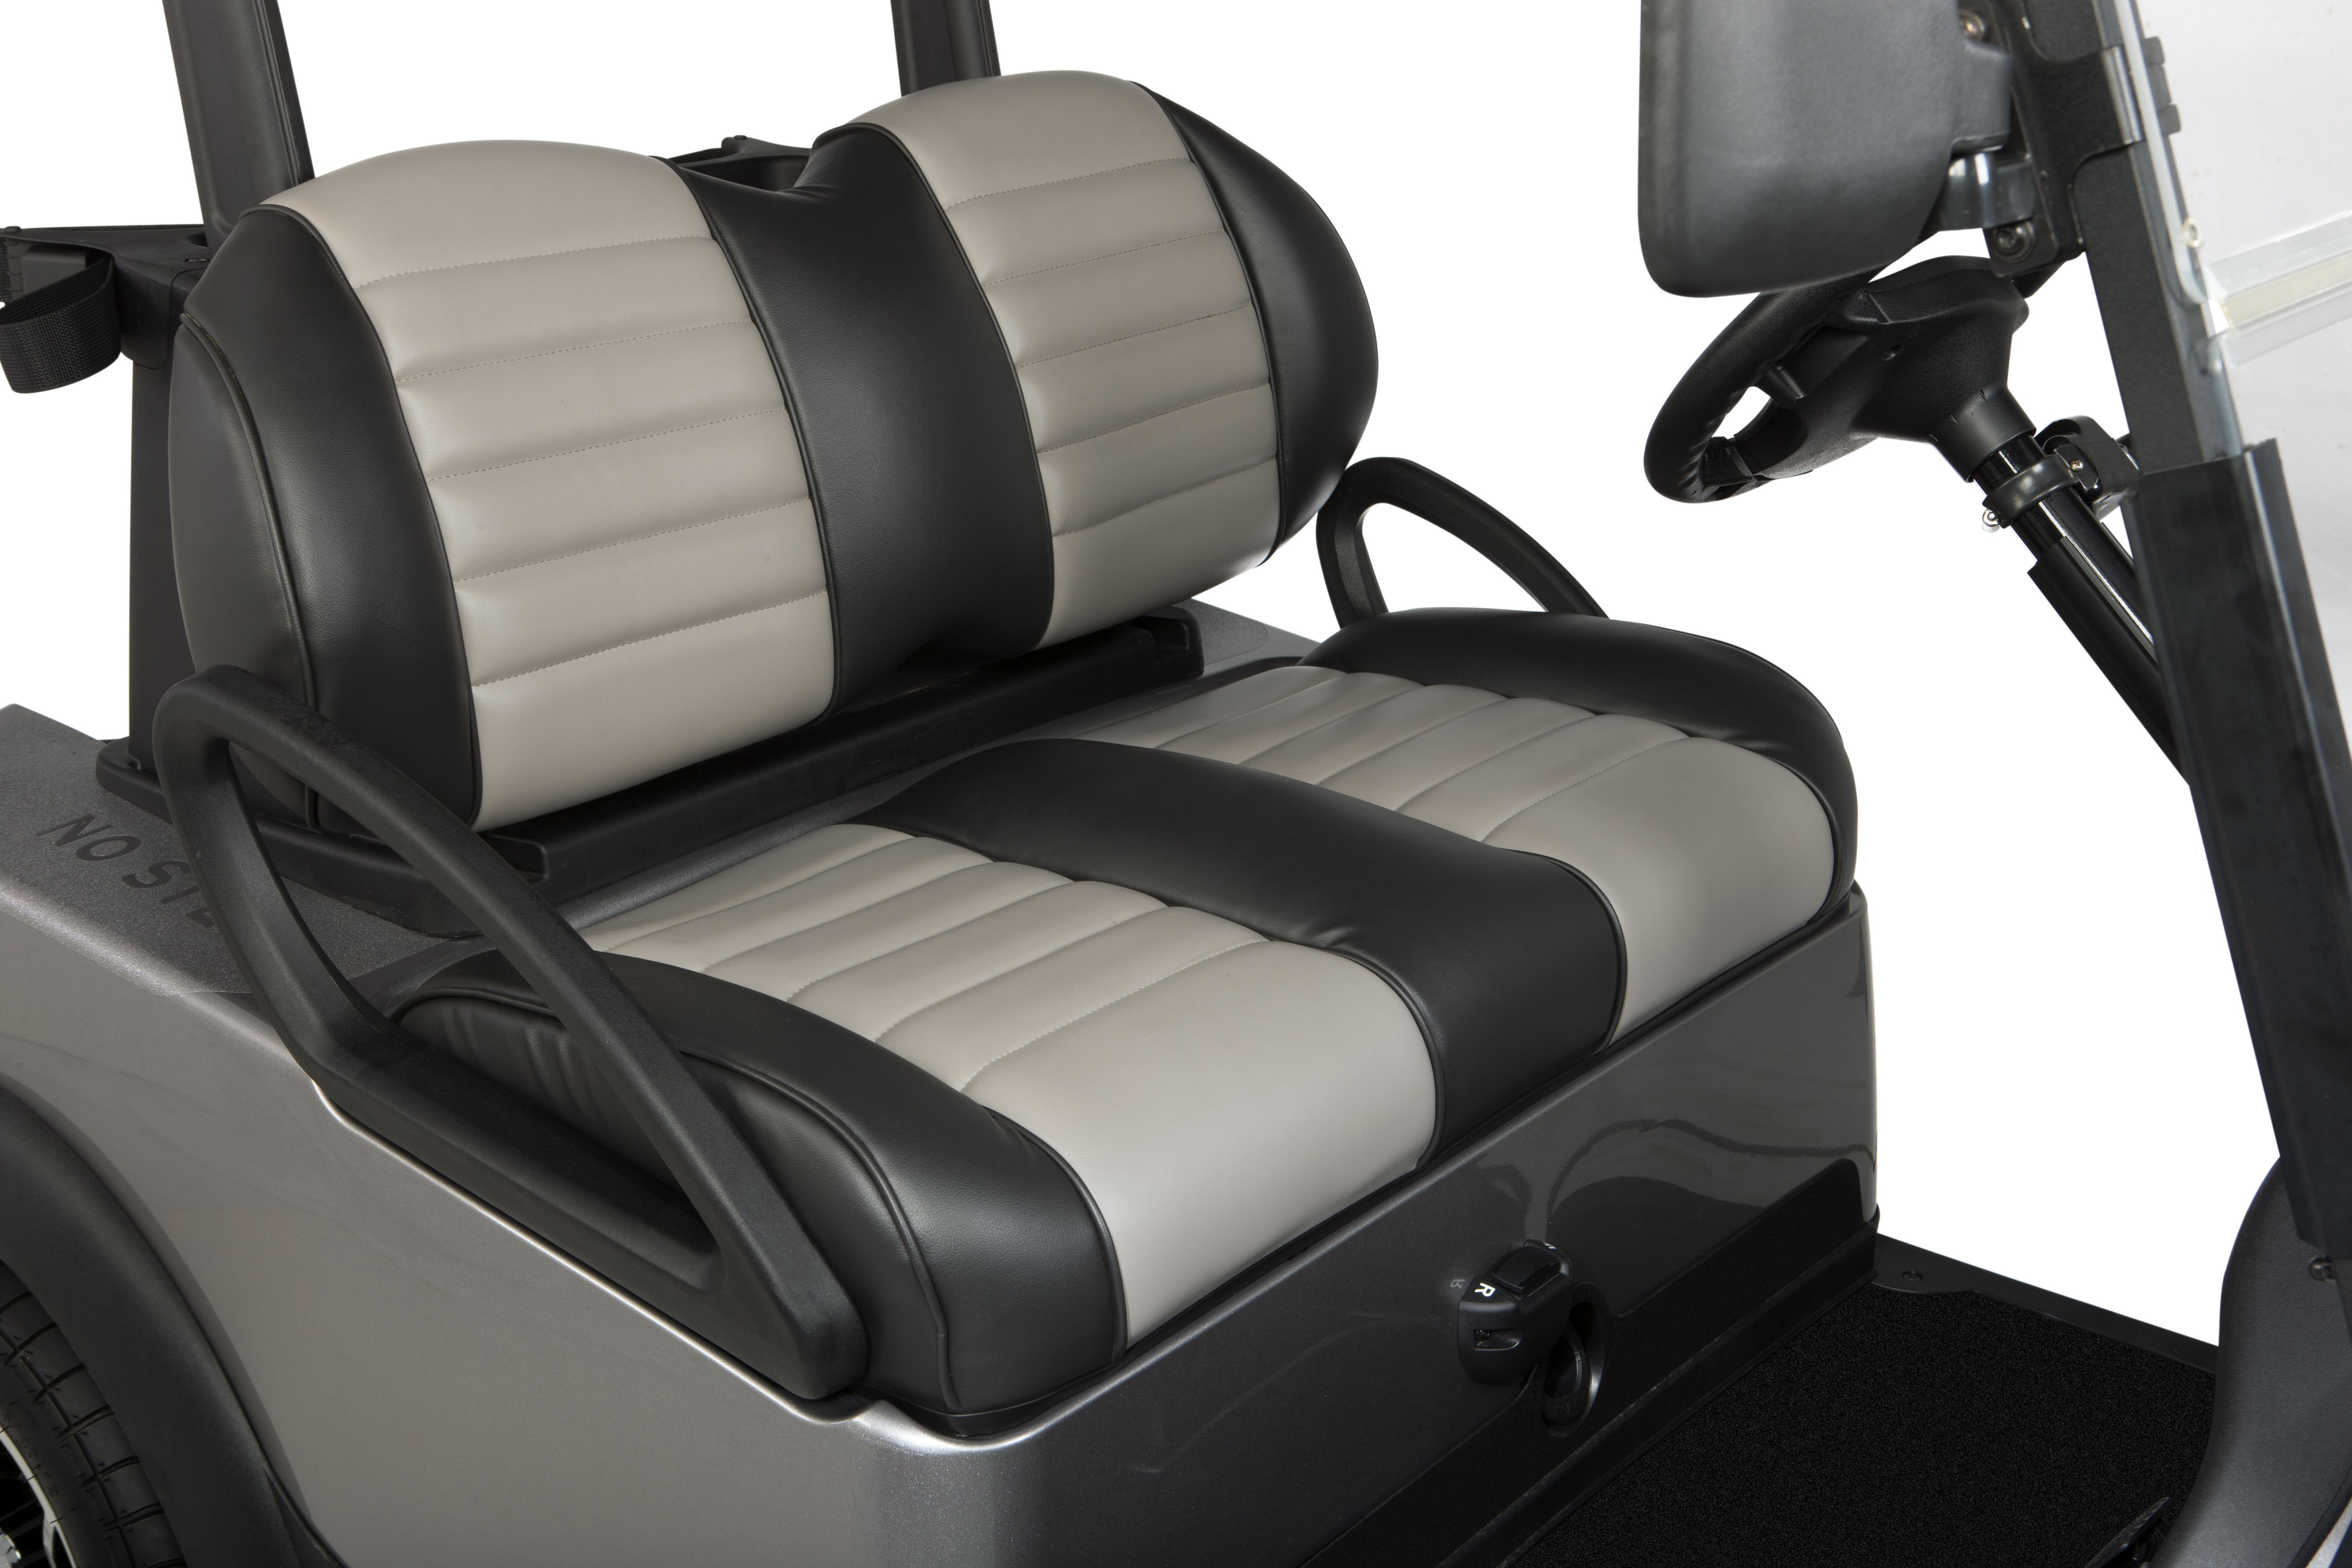 club car replacement seat covers velcromag. Black Bedroom Furniture Sets. Home Design Ideas